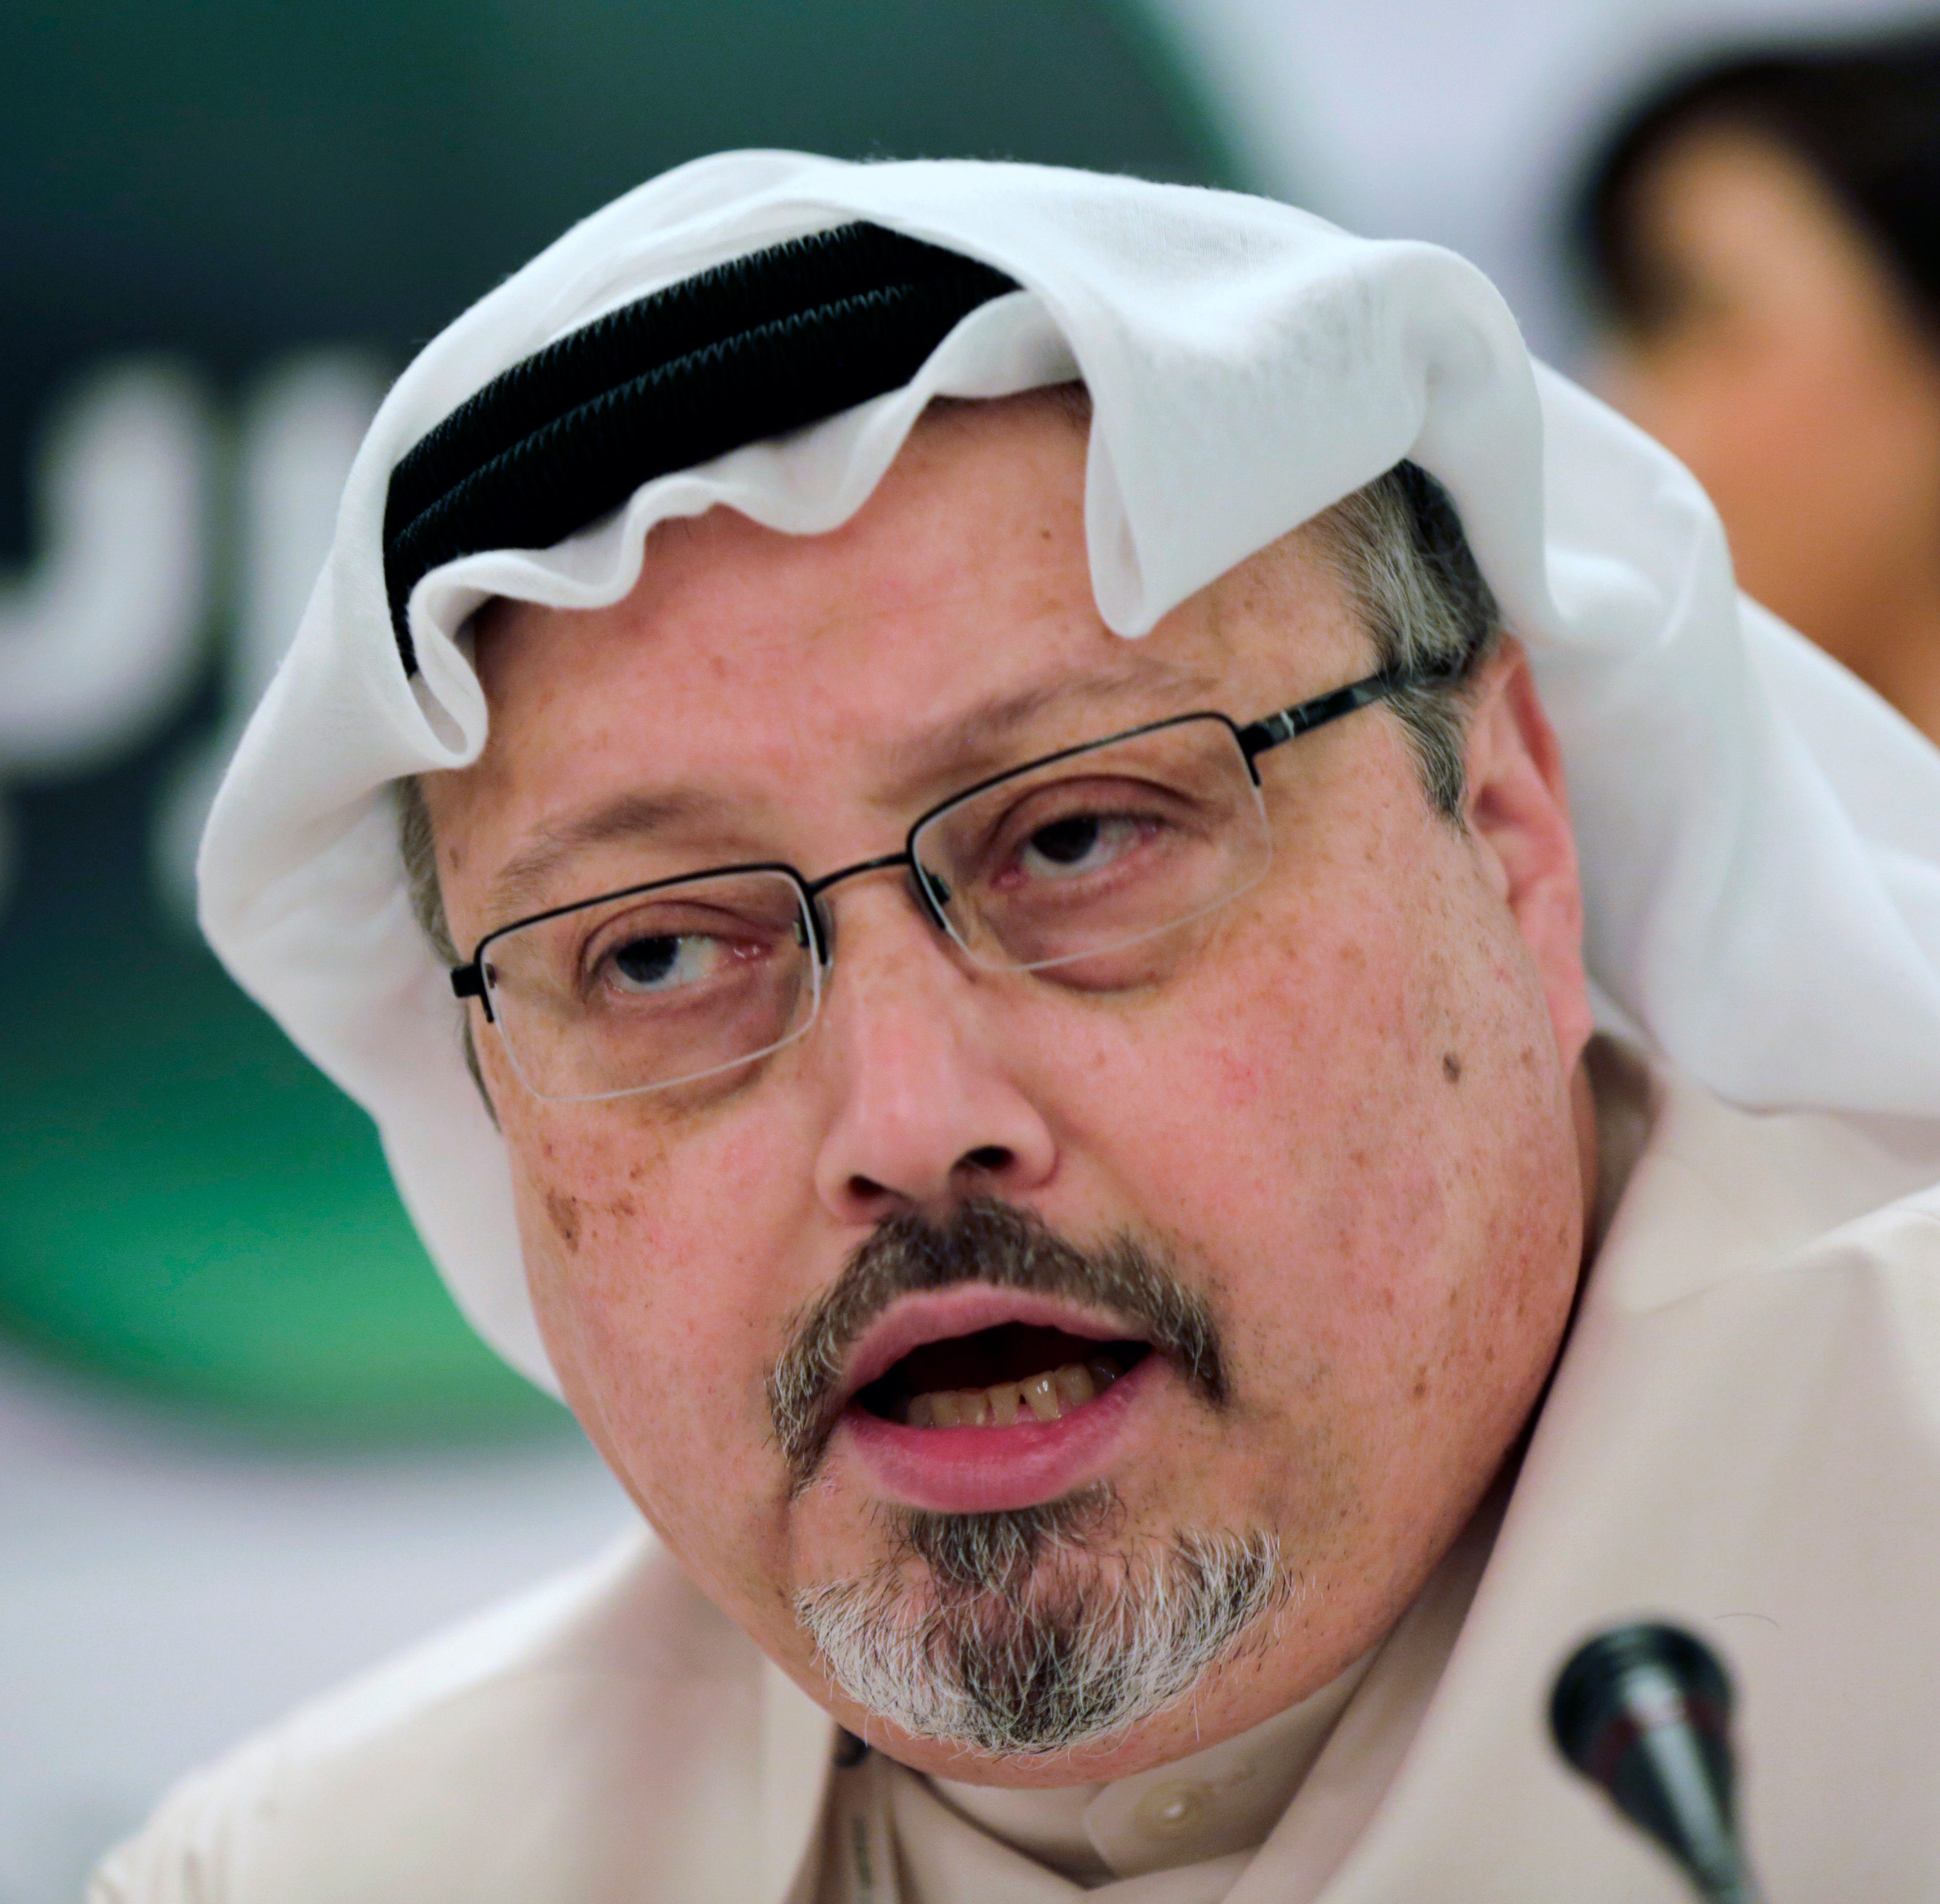 Jamal Khashoggi: What the Arab world needs most is free expression